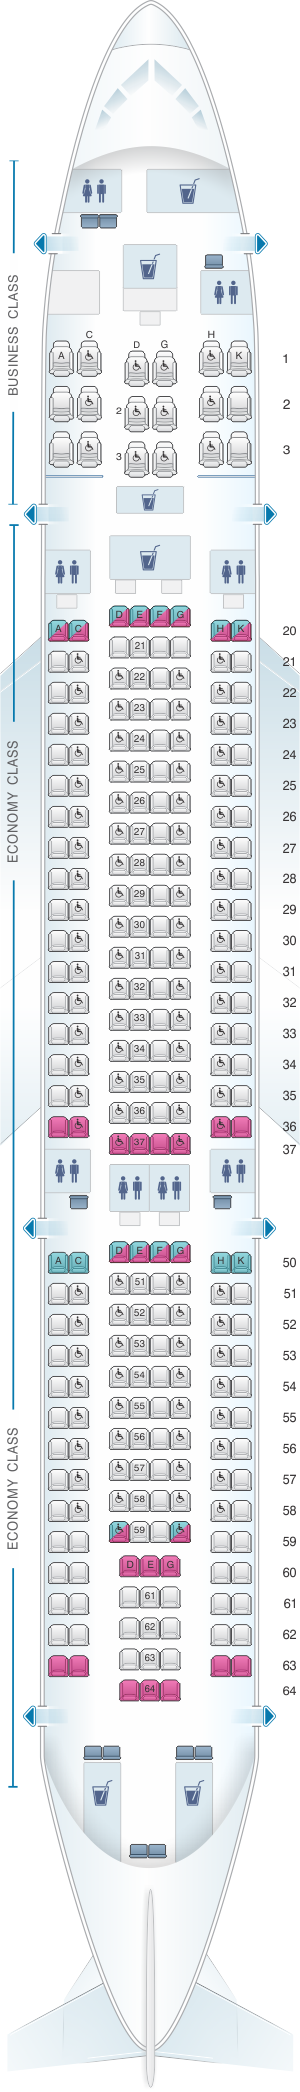 Seat map for SriLankan Airlines Airbus A330-200 Config. 1